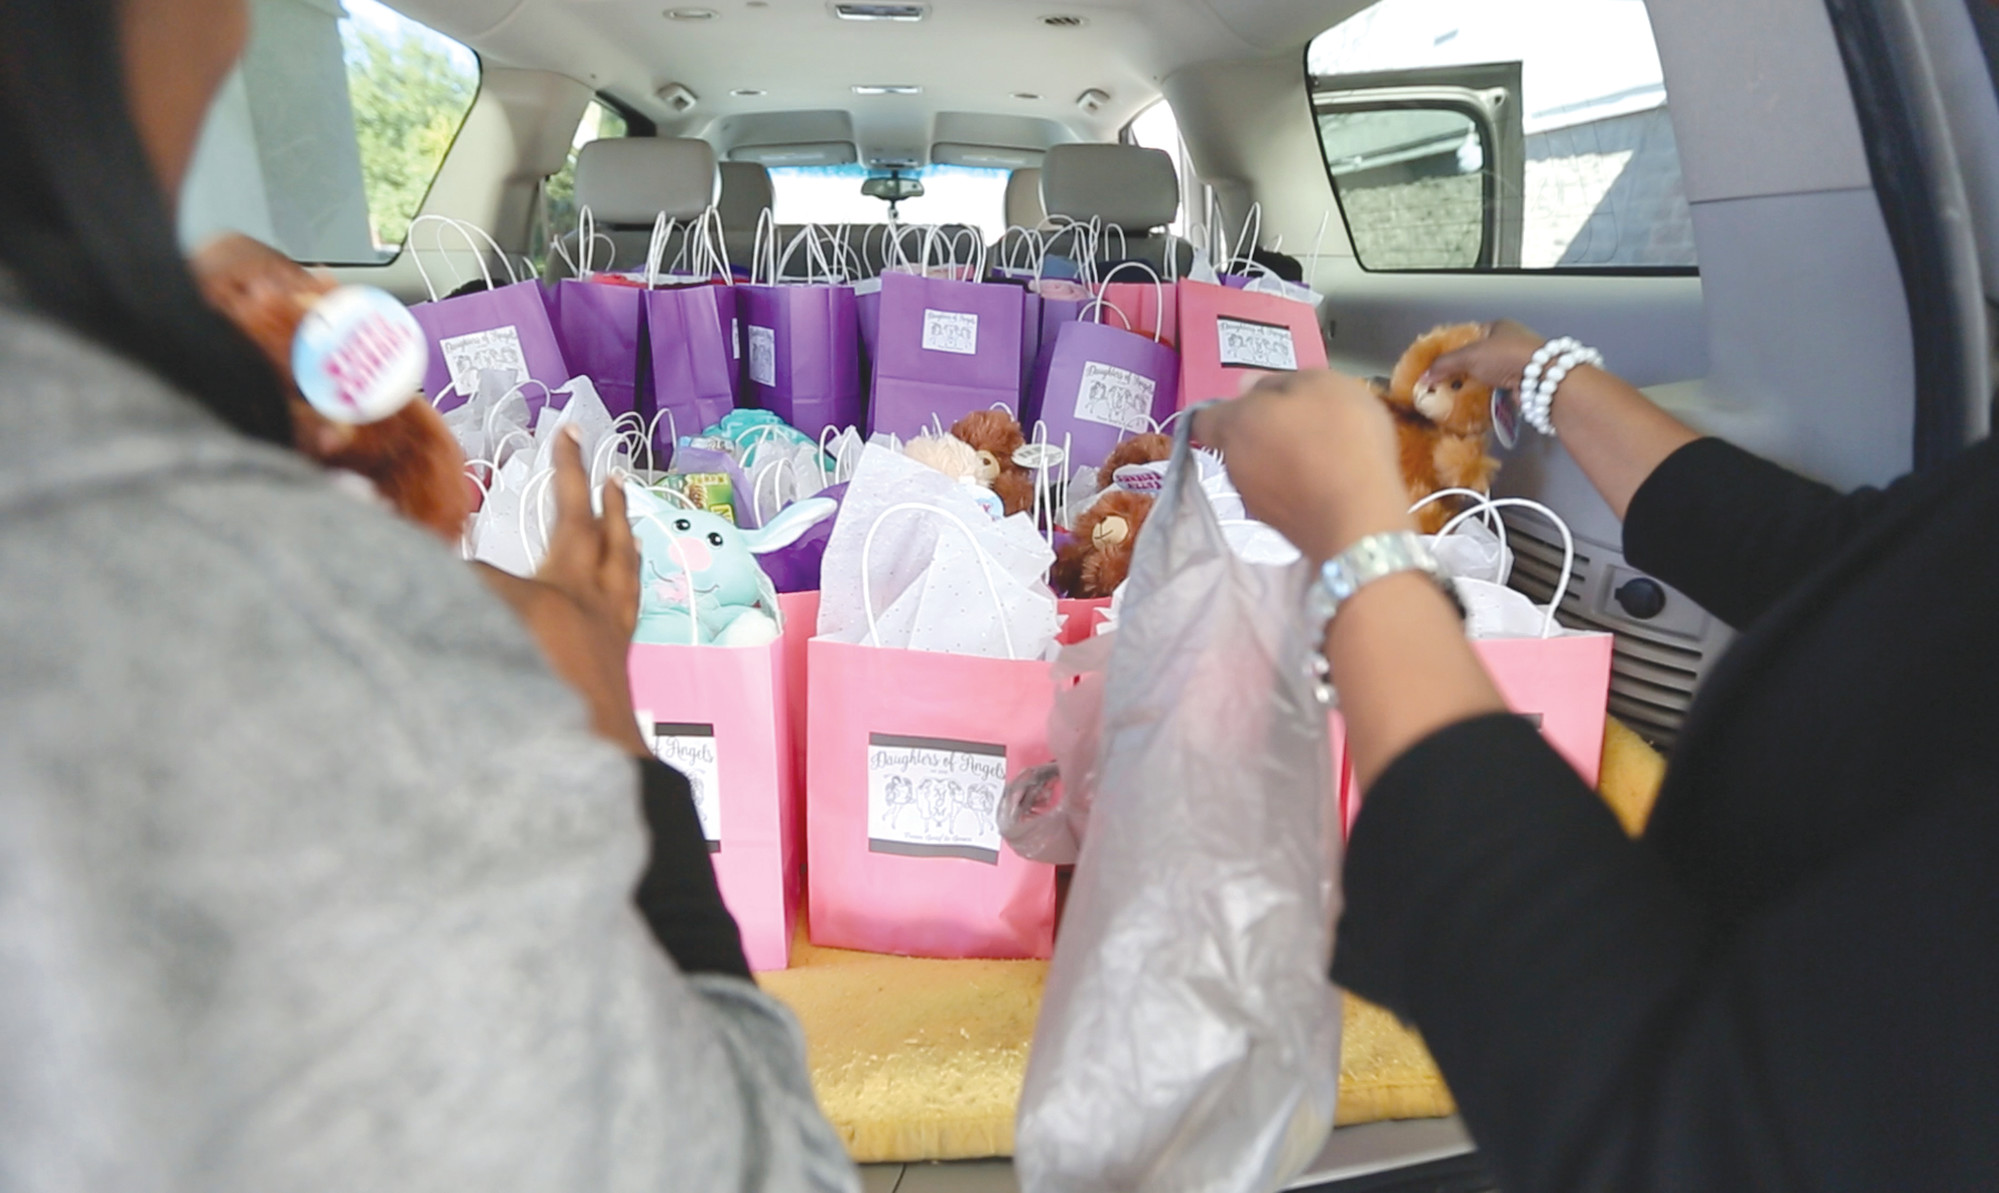 Members of Daughters of Angels pack gift bags before delivering them to Santee Hematology Oncology on Friday.